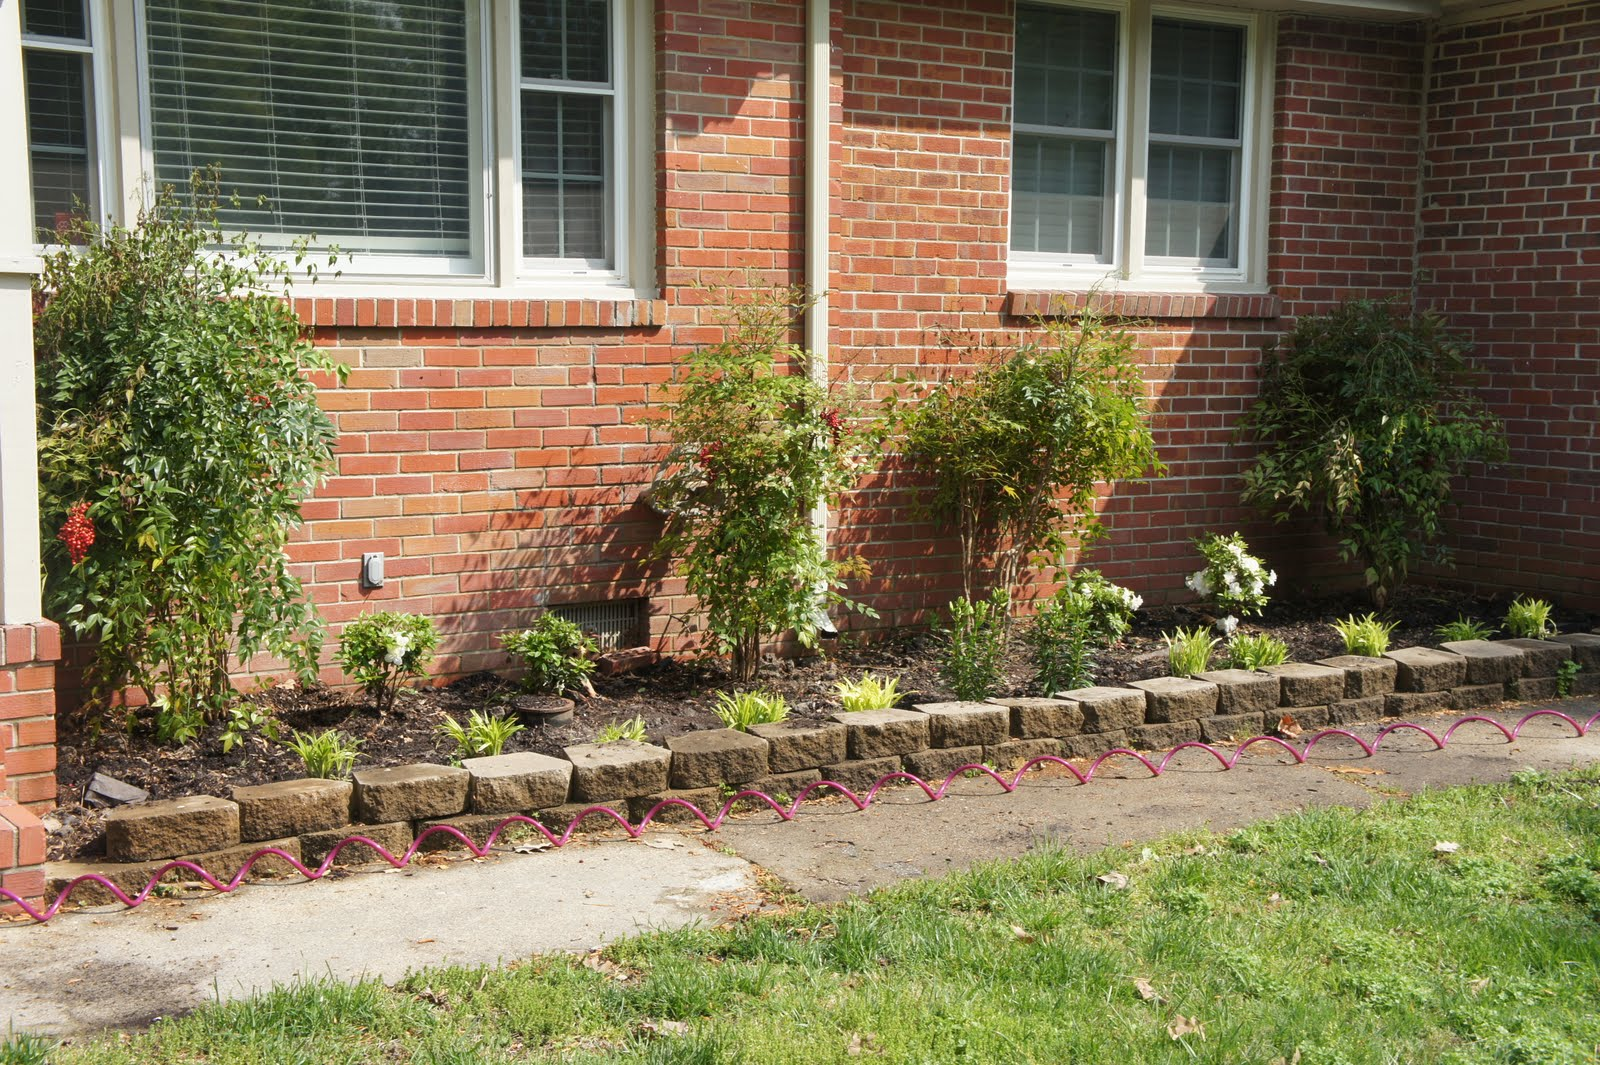 Landscaping landscaping for dummies for Landscaping for dummies